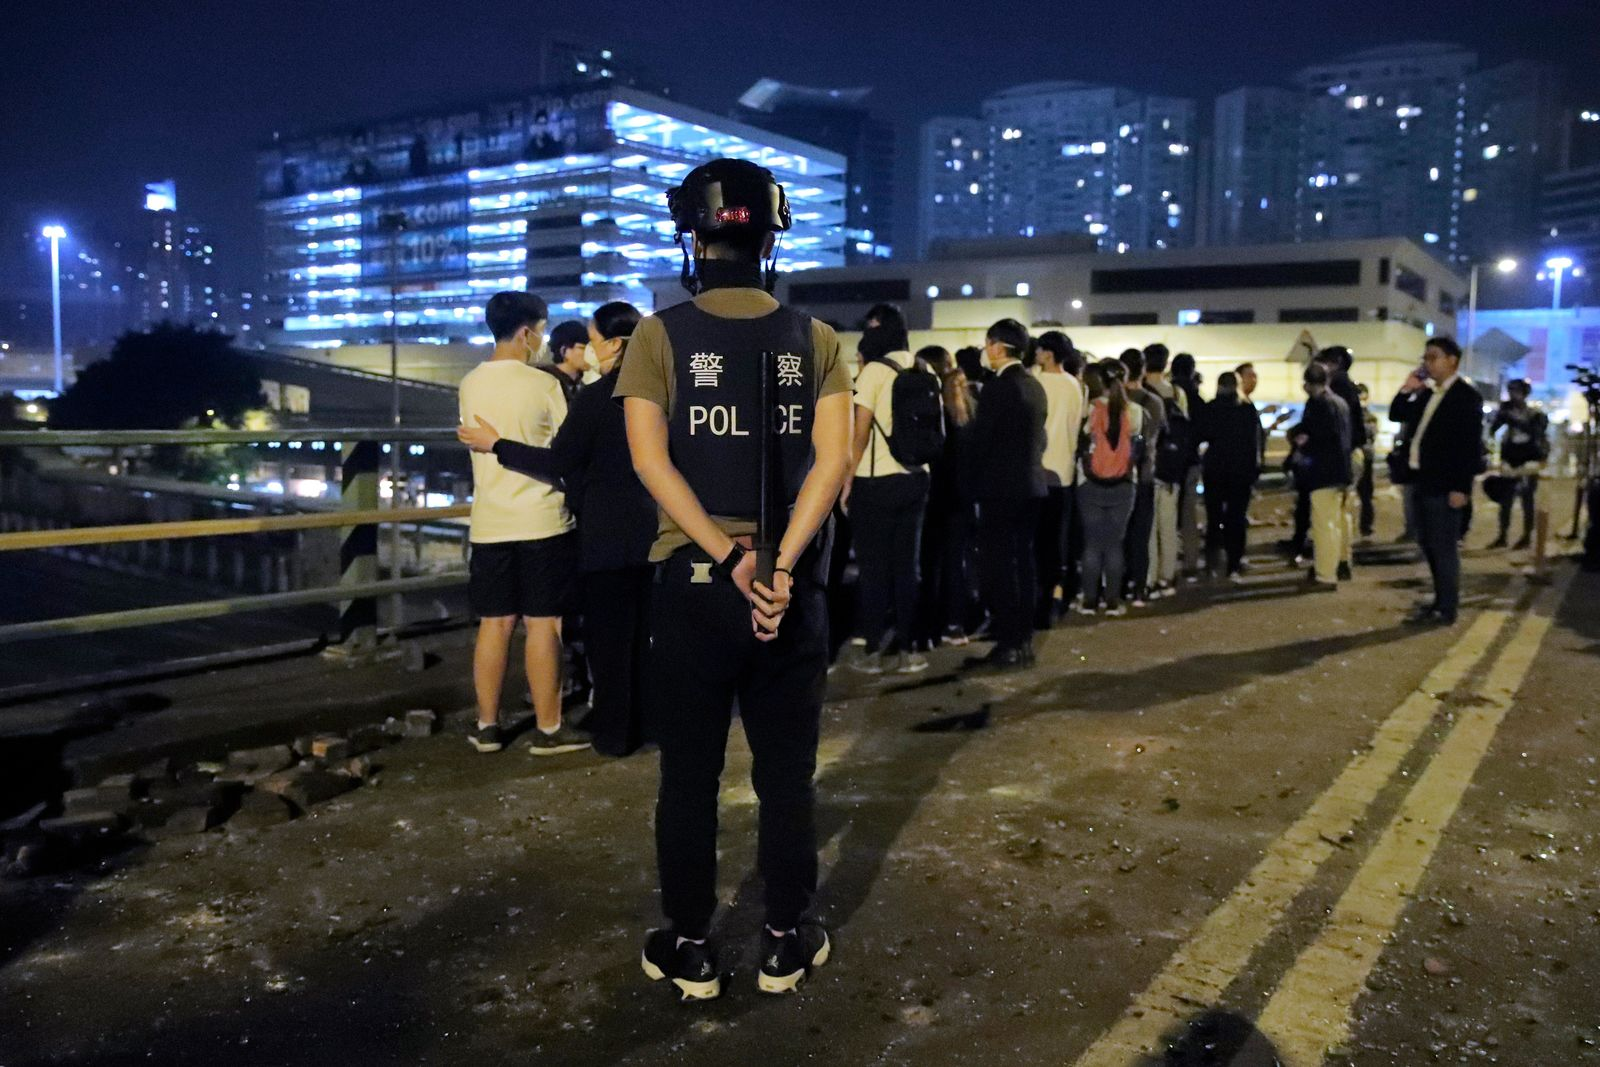 A riot policeman watches over a group of detained people on a bridge in Hong Kong, early Tuesday, Nov. 19, 2019.{ } (AP Photo/Kin Cheung)